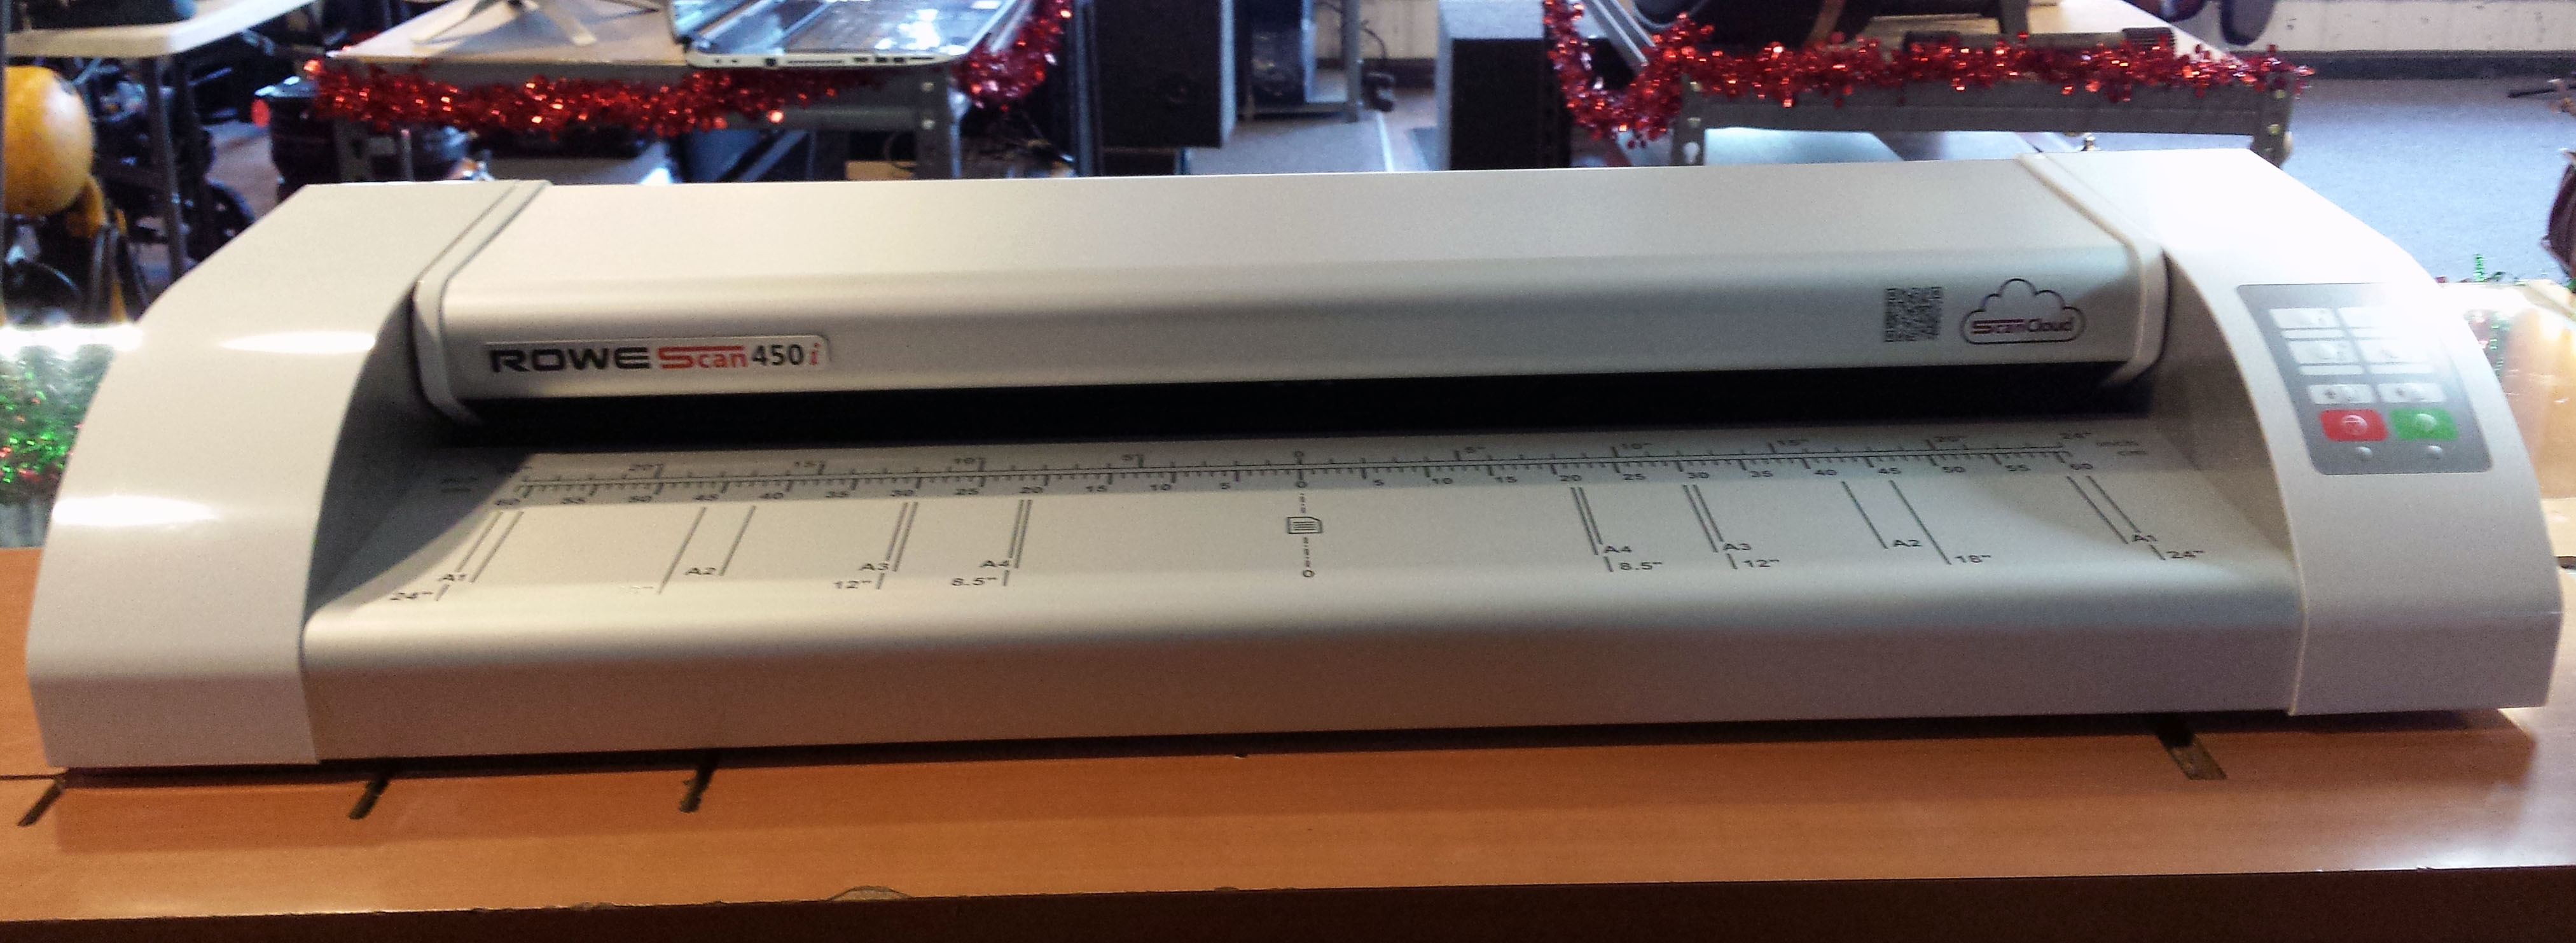 Rowe 450i Large Wide Format Sheet-fed Industrial Color Scanner 24